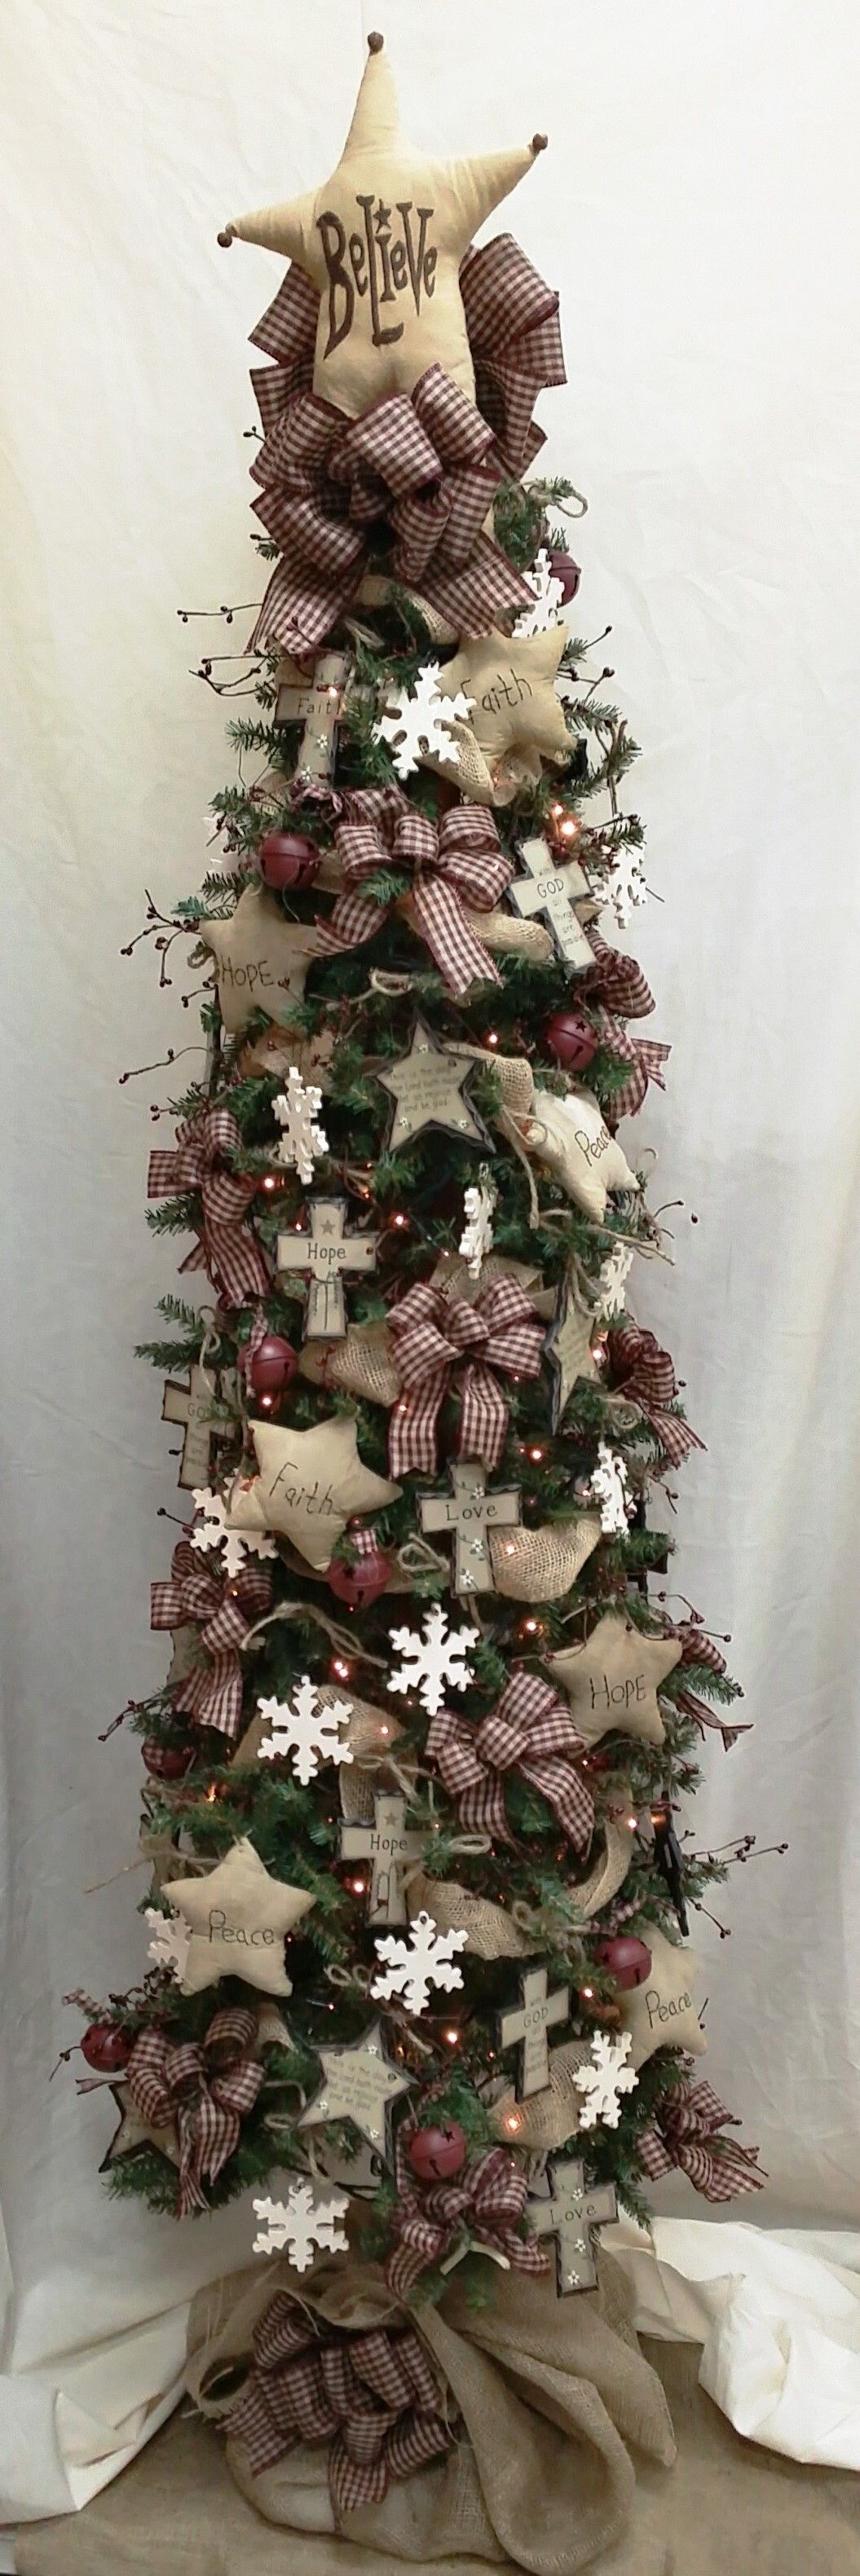 Primitive Christmas Tree.Get Into The Christmas Season With Our Unique Primitive Star